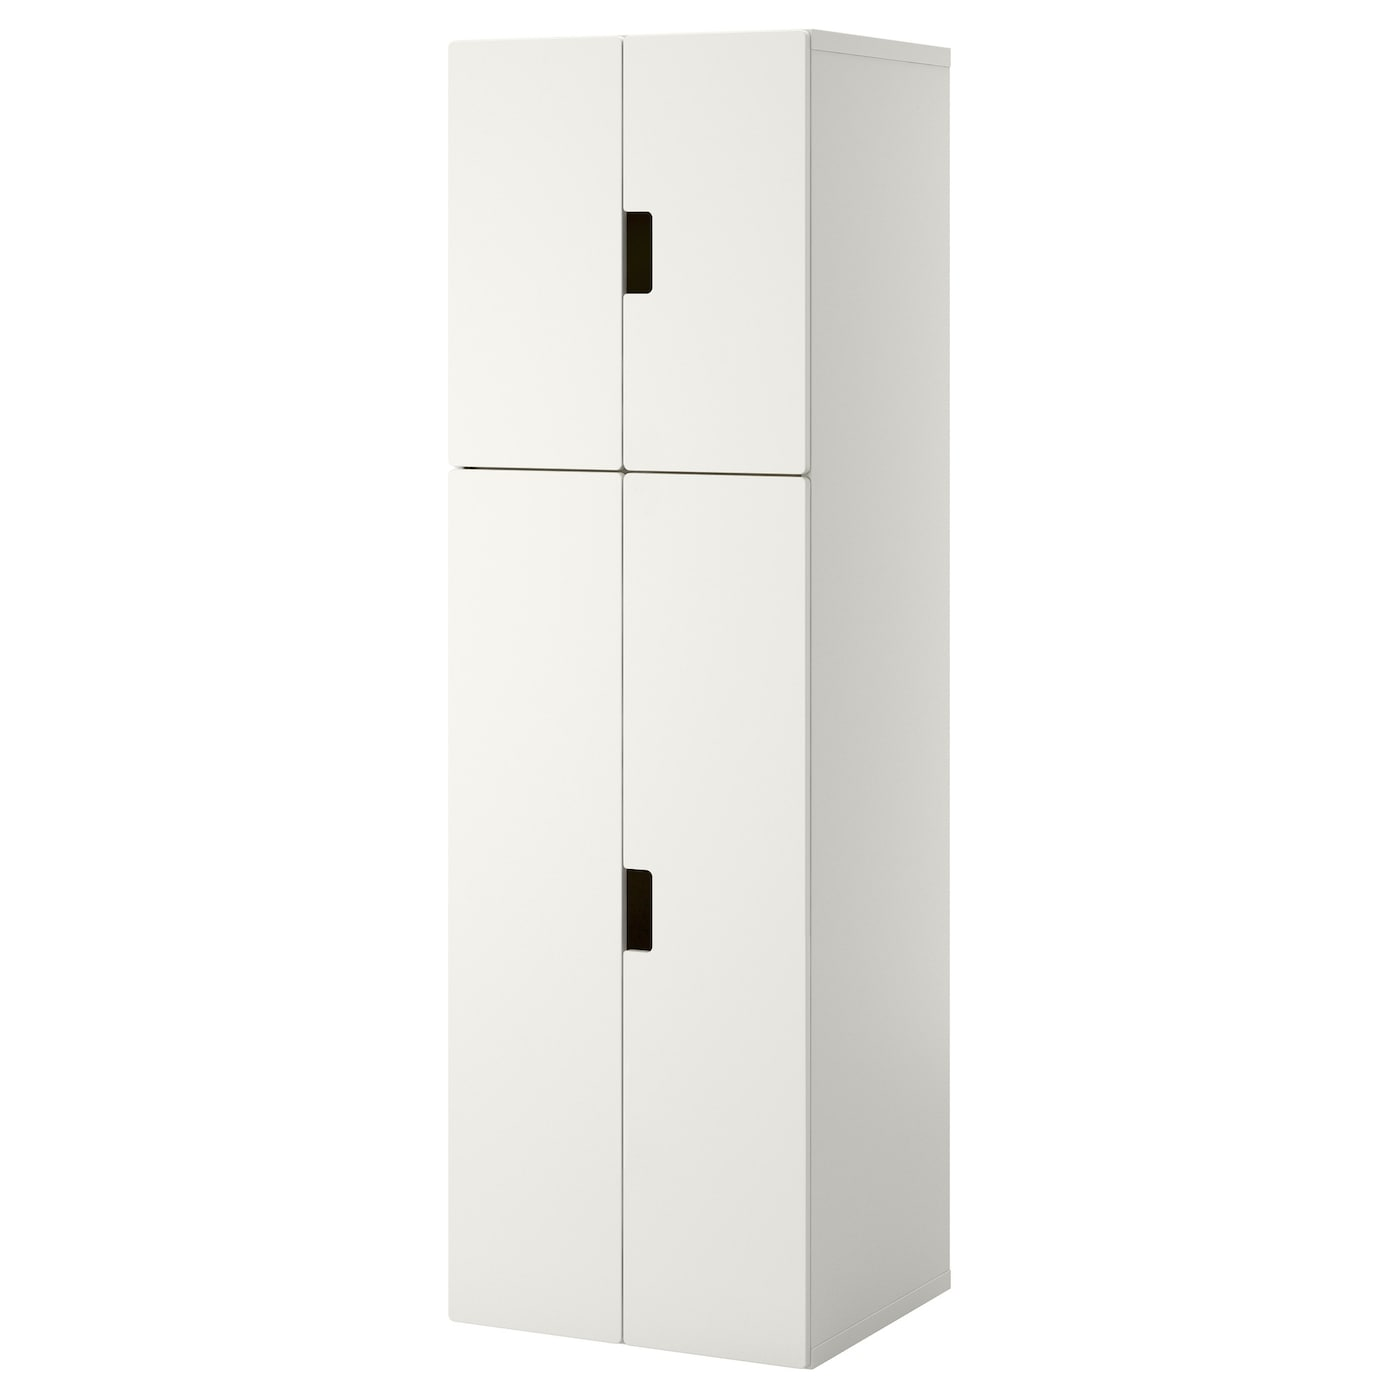 Ikea rubinetti stuva childrens storage system from ikea for Rubinetti bagno ikea